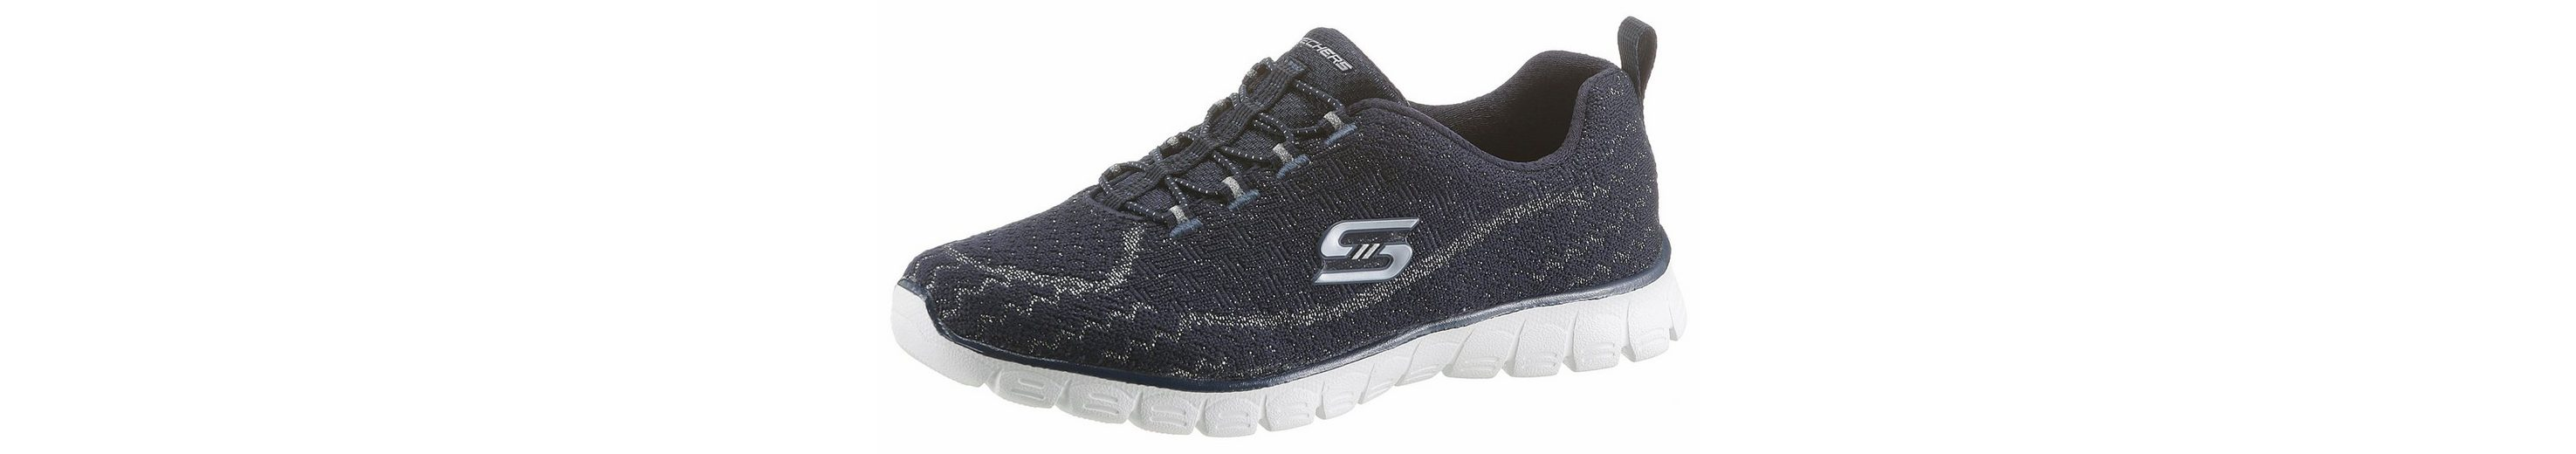 Skechers EZ Flex 3.0 Estrella Sneaker, in cooler Space-Optik